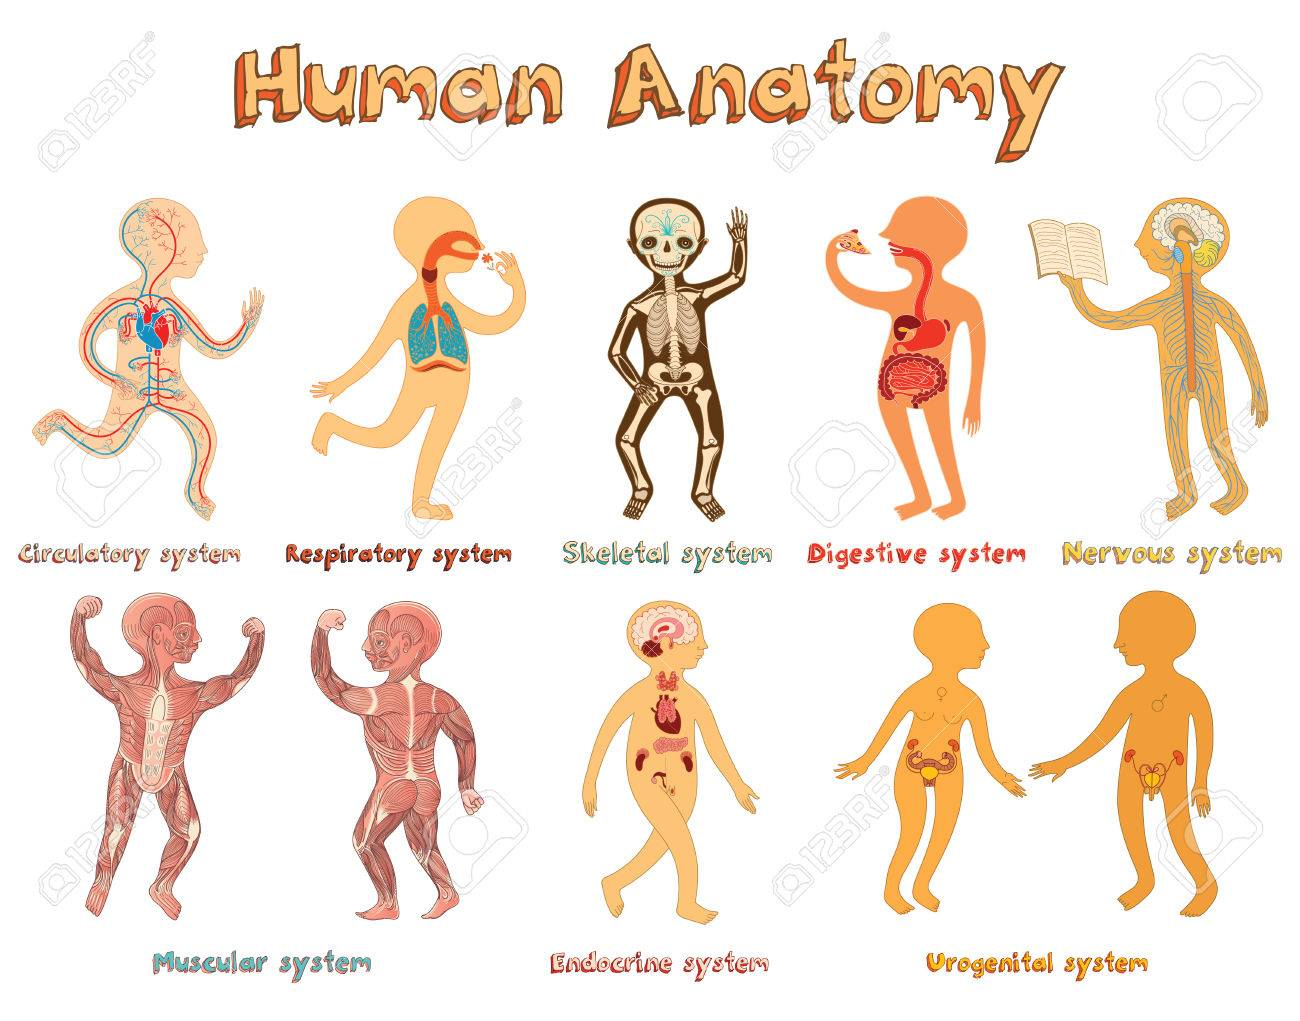 Educational Illustration Of Human Anatomy Systems Of Organs For